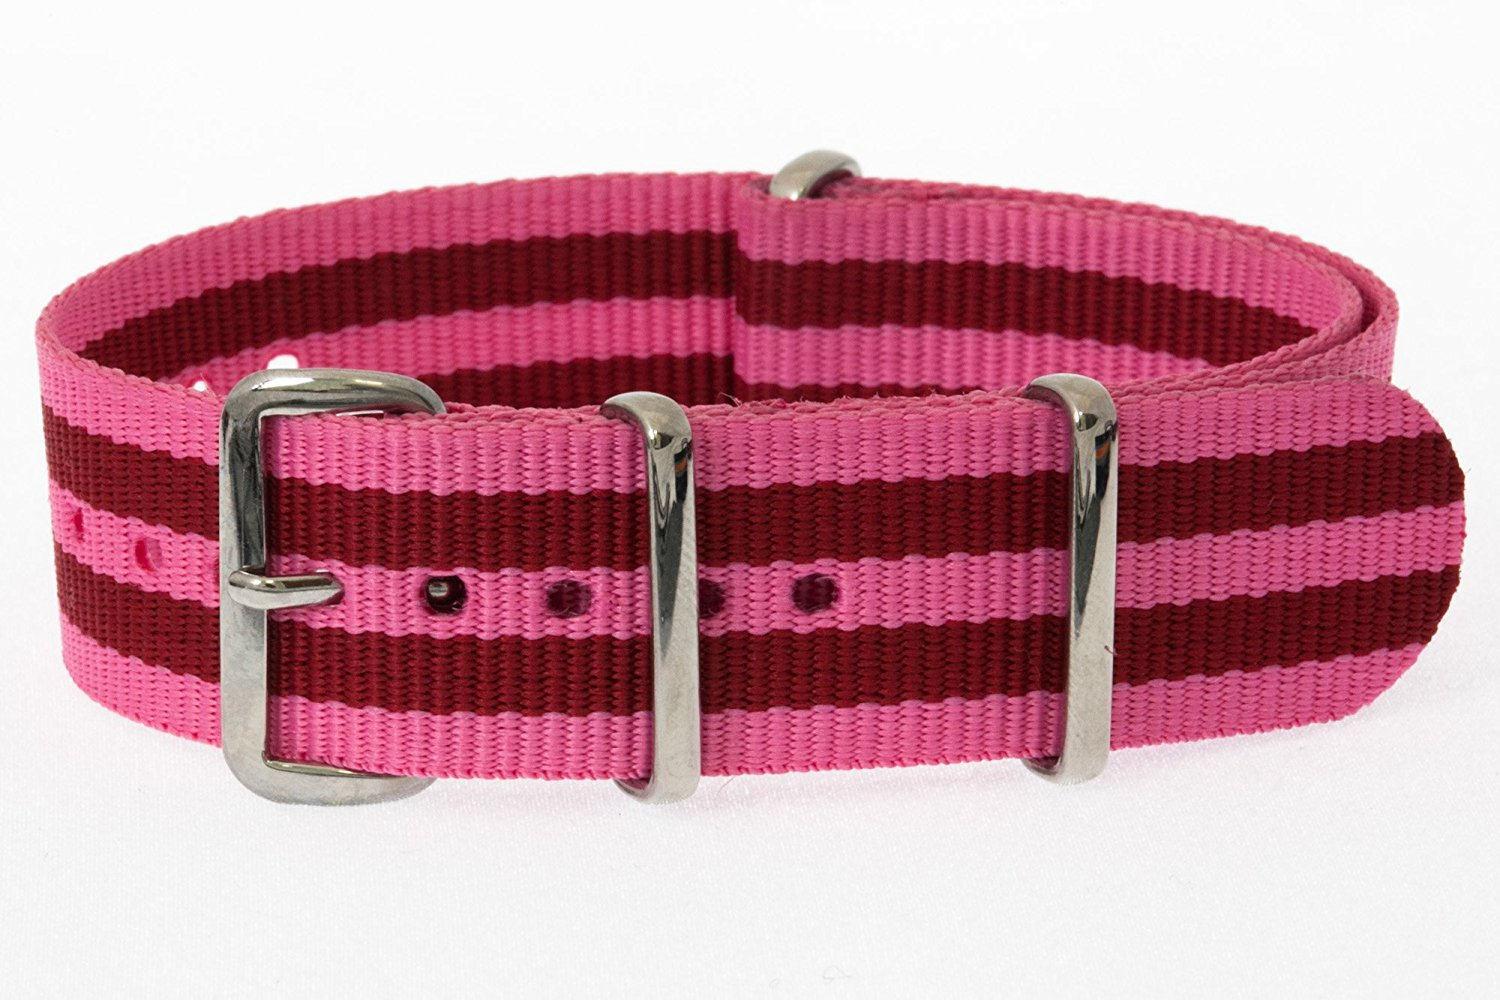 b4cb6693033 Get Quotations · 20mm   Pink Red   James Bond Nylon Nato Watch Band  Military Strap G10